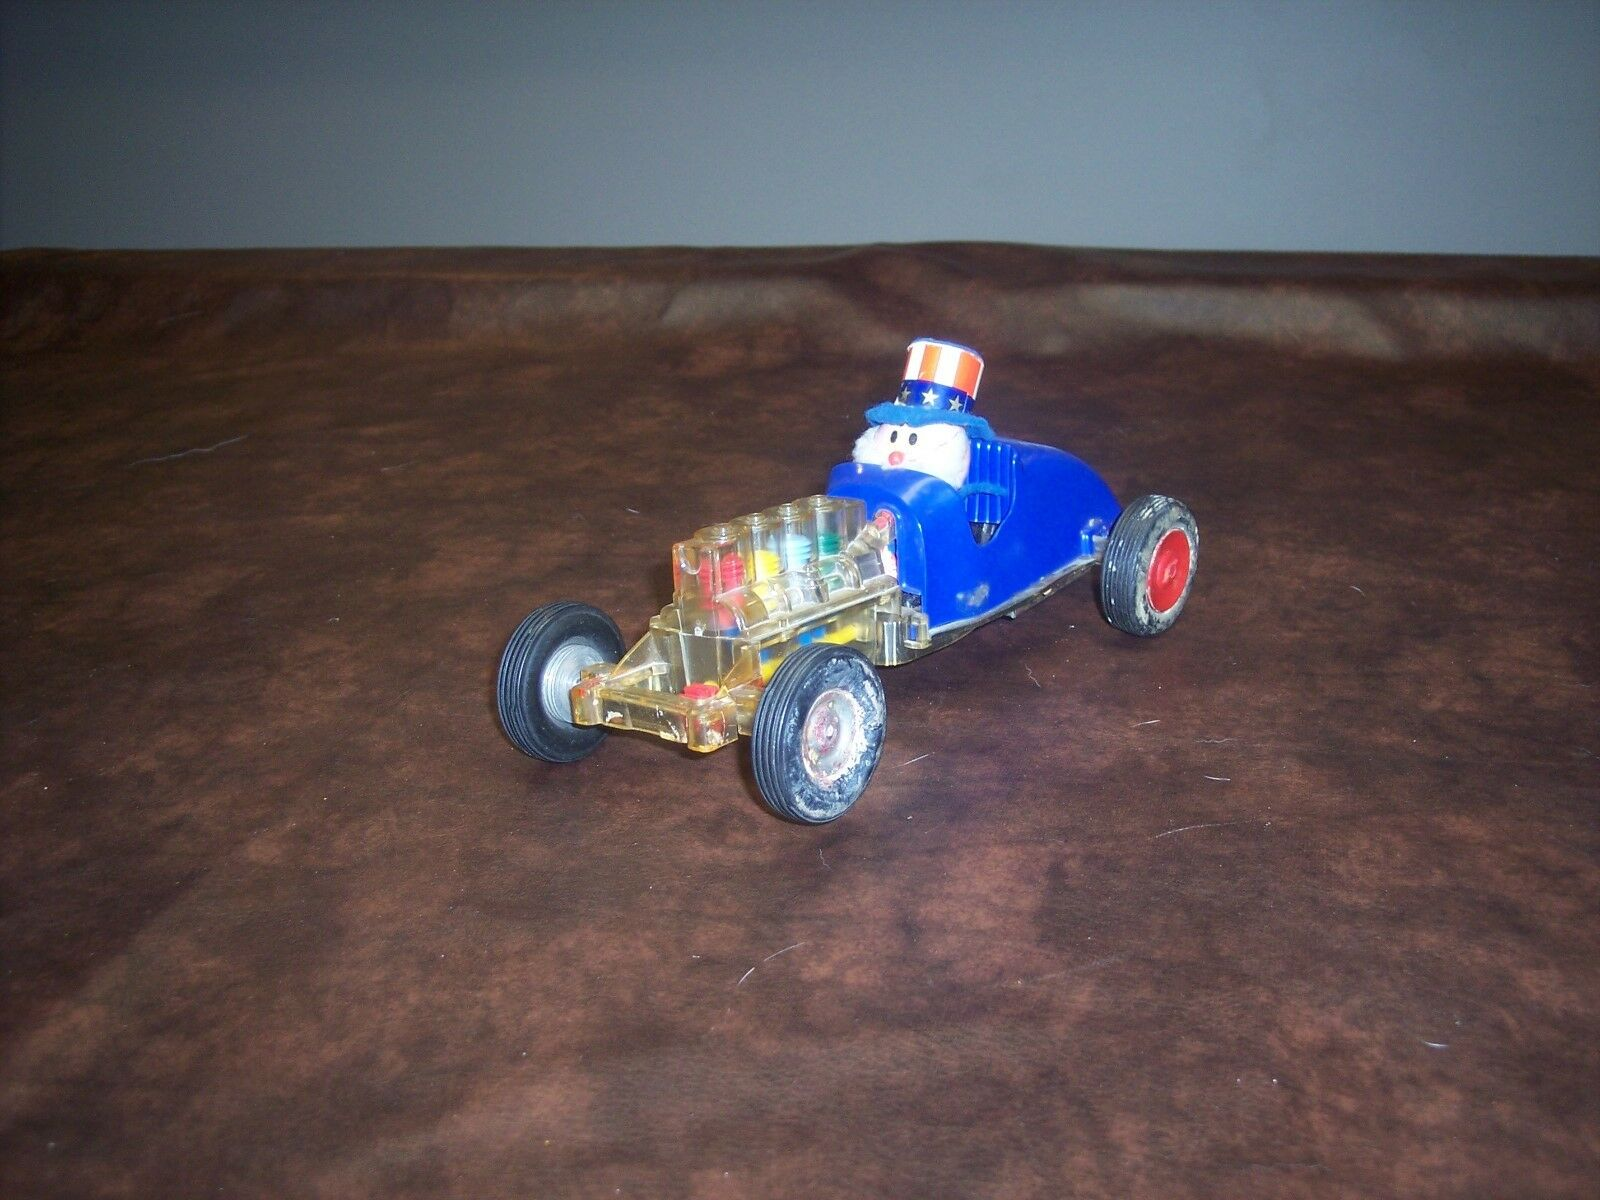 NOSCO TOY CAR - UNCLE SAM DRIVER - HARD TO FIND - USED - PLAYED WITH ITEM